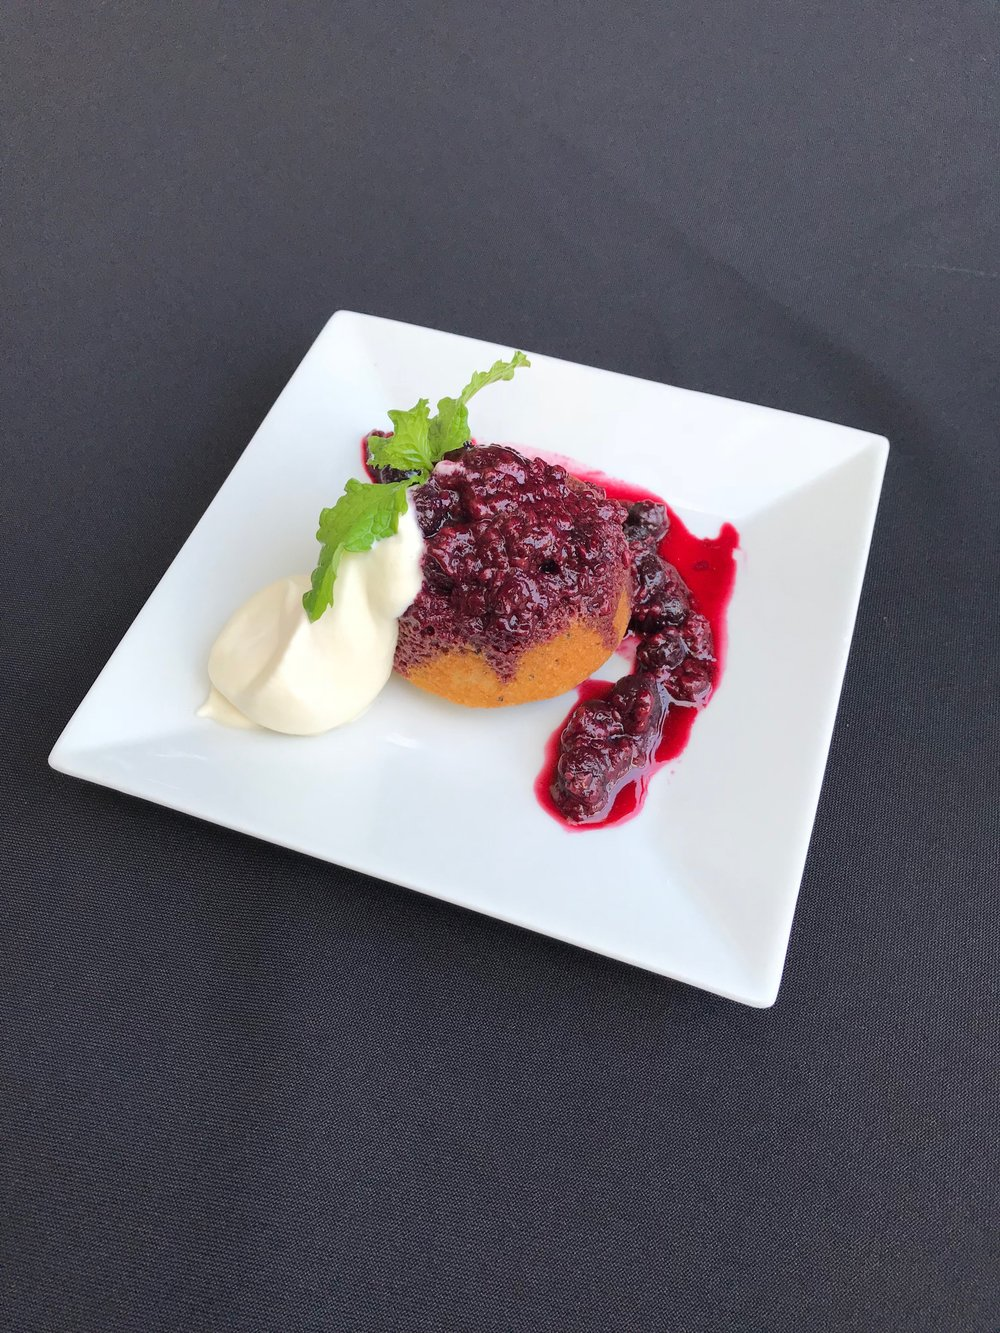 Lemon and Poppy Seed Cake  - Housemade cake topped with poached mixed berries and Chantilly cream